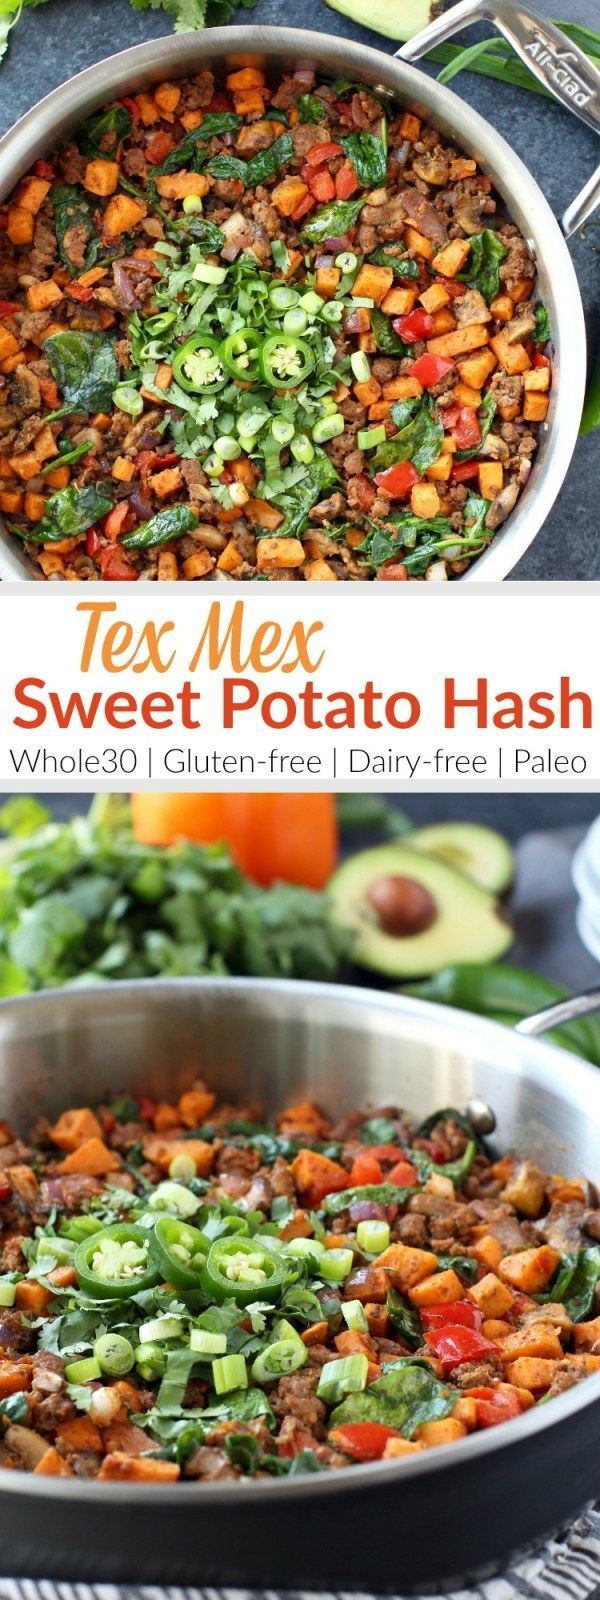 TEX MEX SWEET POTATO HASH | Make good use of taco meat leftovers and give this easy one-dish Sweet Potato Tex Mex Hash a try. A tasty Whole30 and egg-free breakfast option.| http://therealfoodrds.com/tex-mex-sweet-potato-hash/